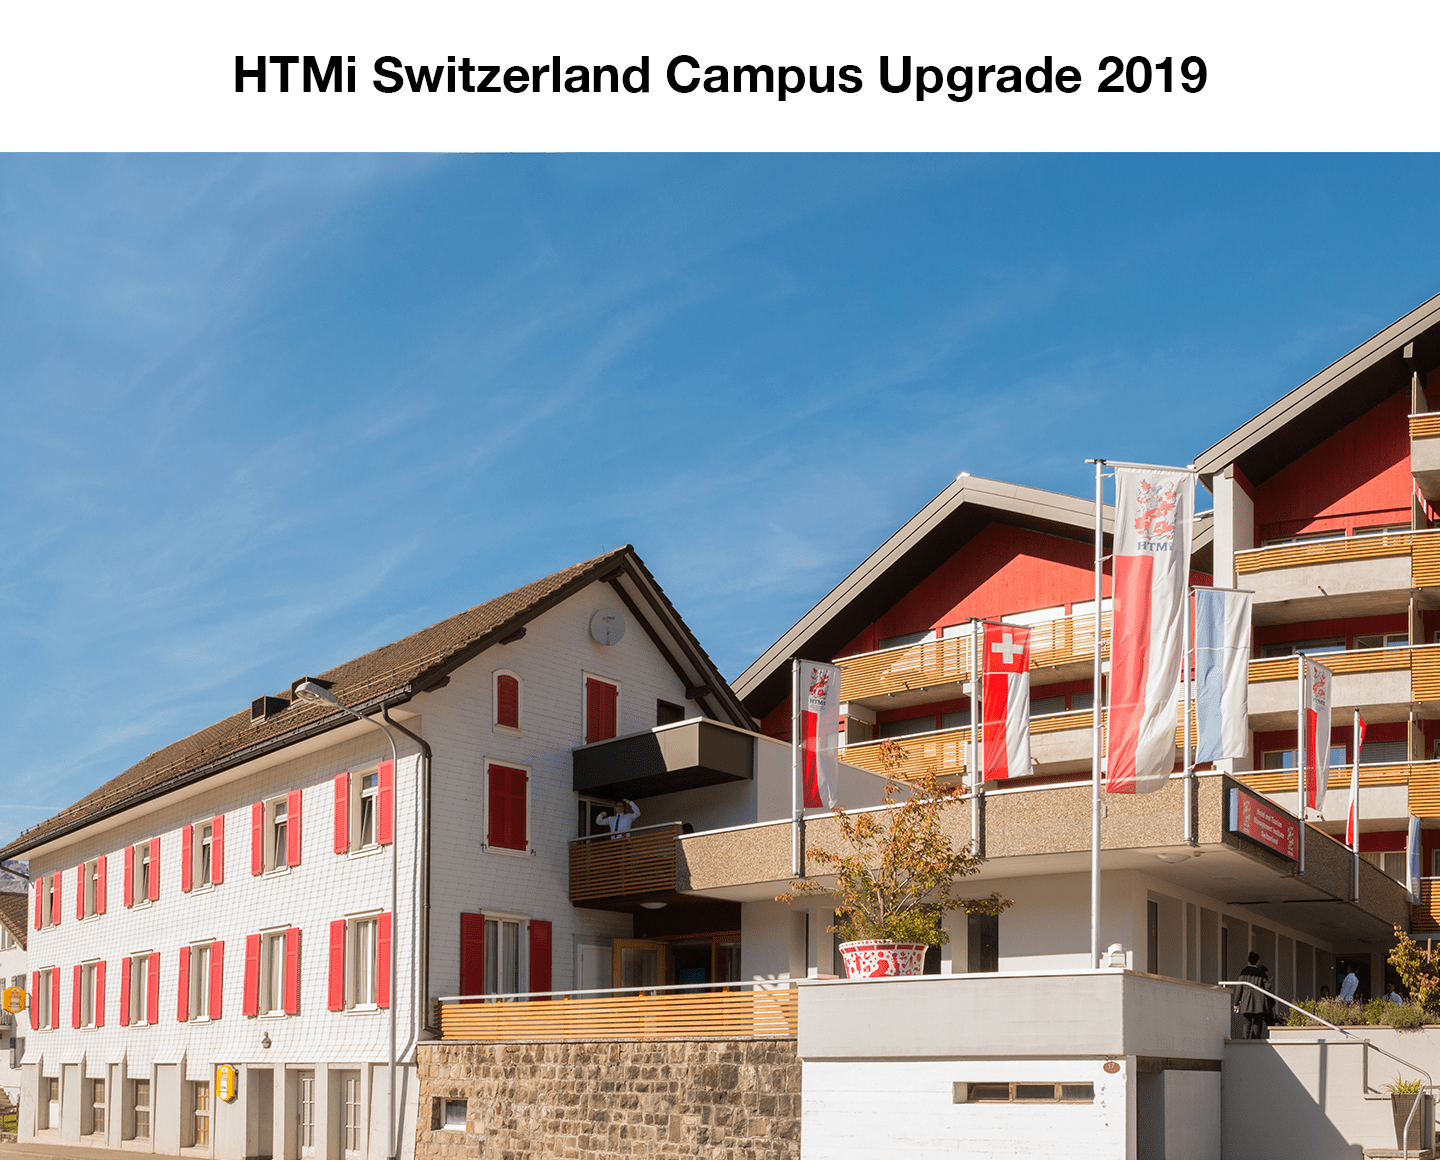 HTMi Switzerland Campus Upgrade 2019